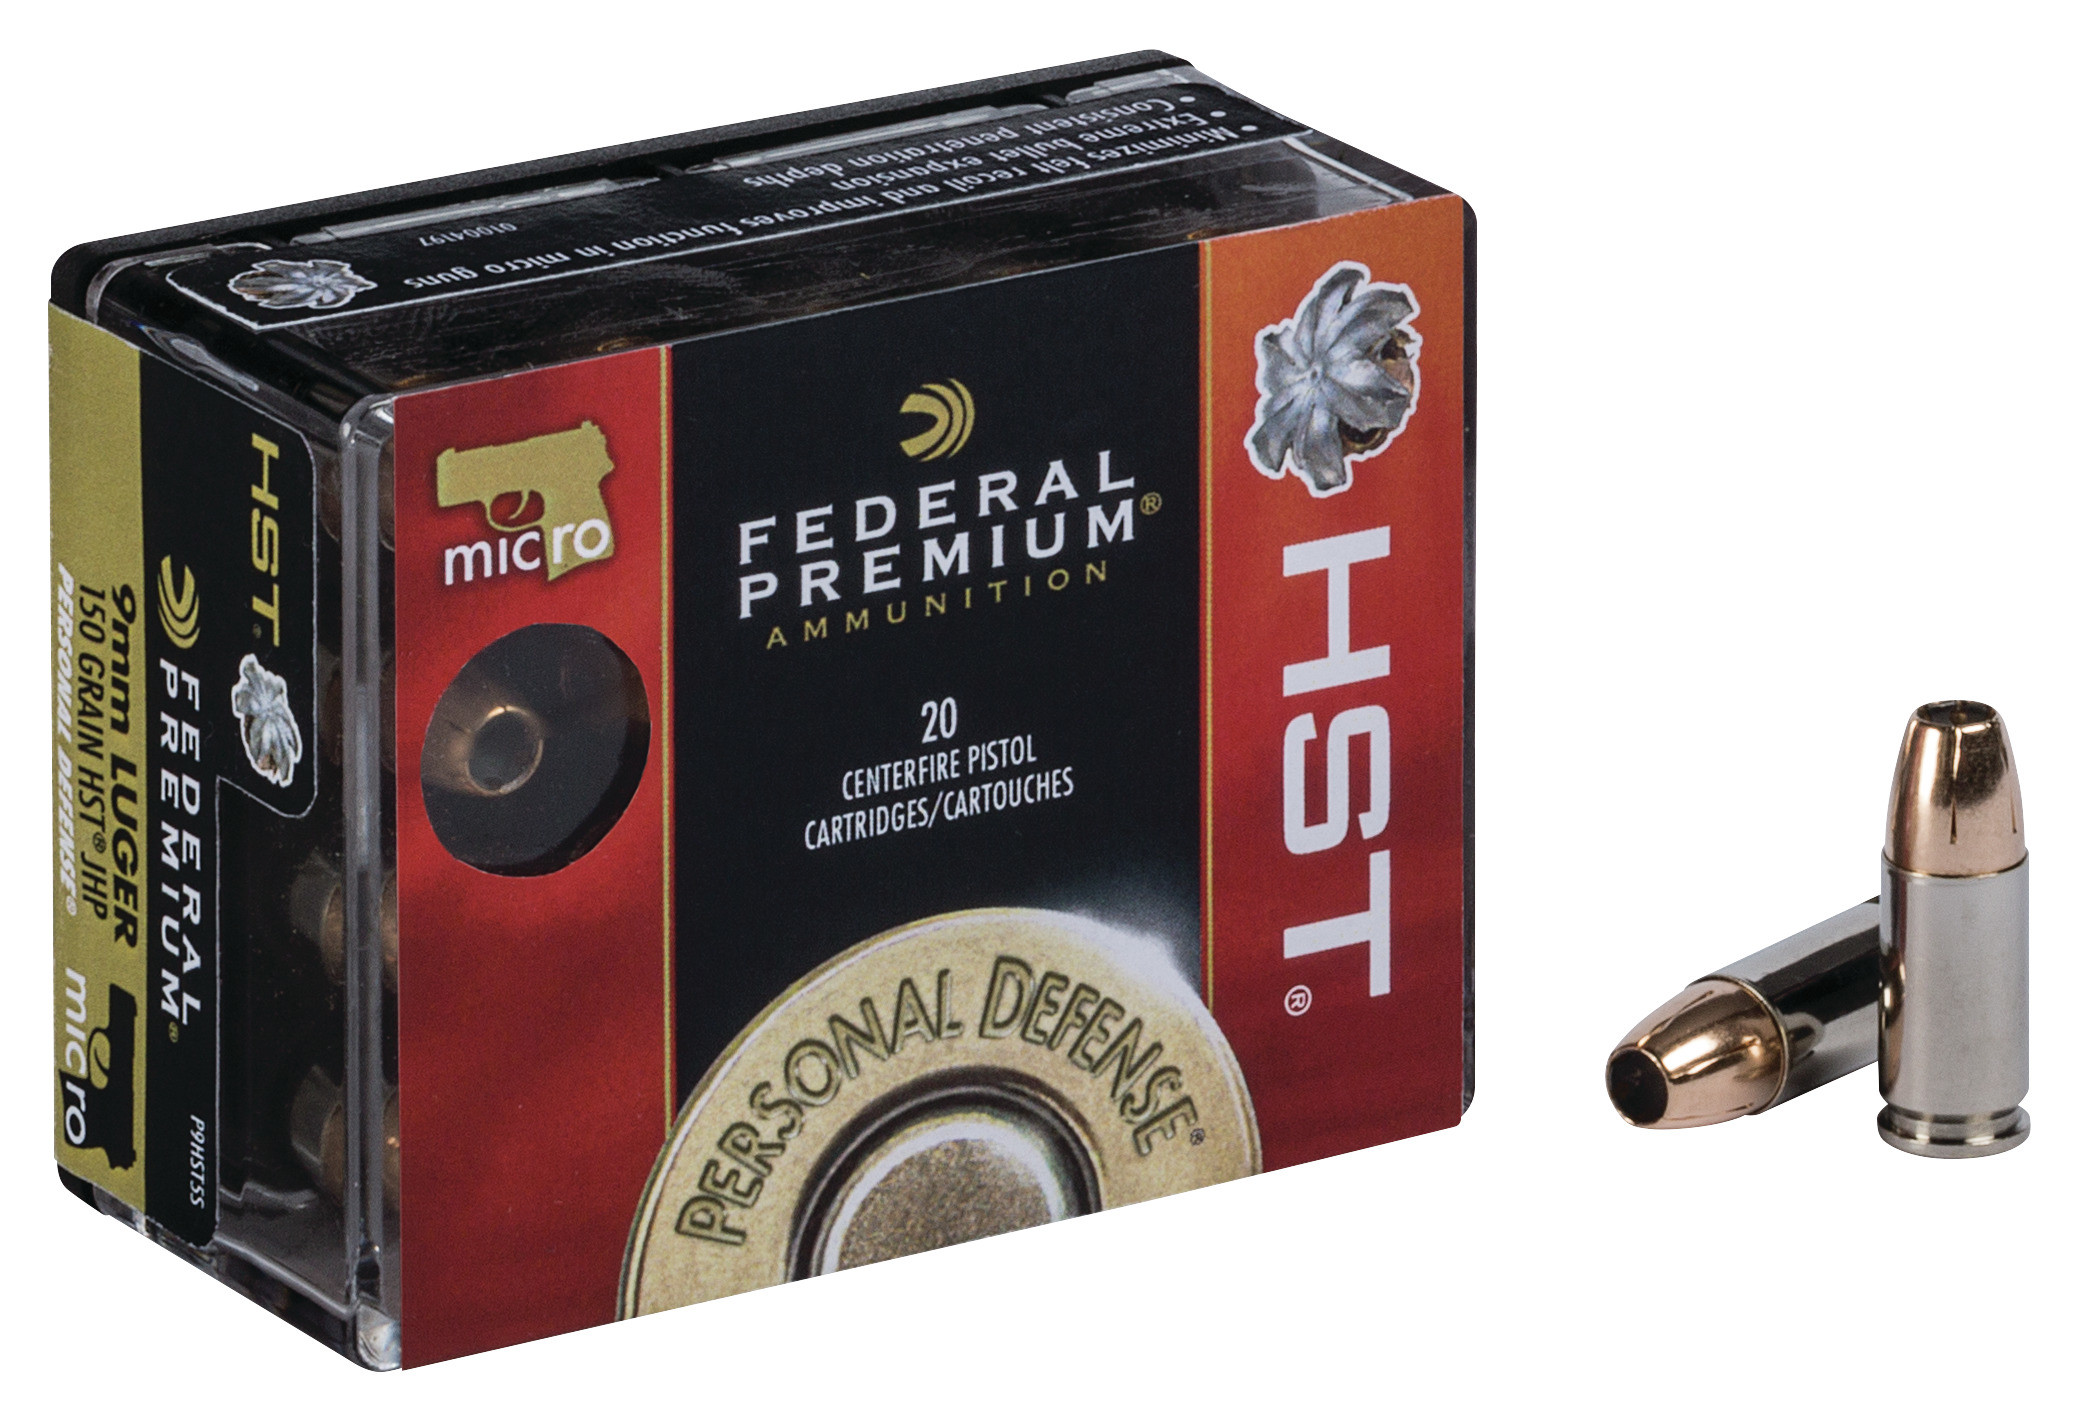 Federal Premium Personal Defense Ammunition 9mm Luger 150 Grain HST Jacketed Hollow Point Per 20